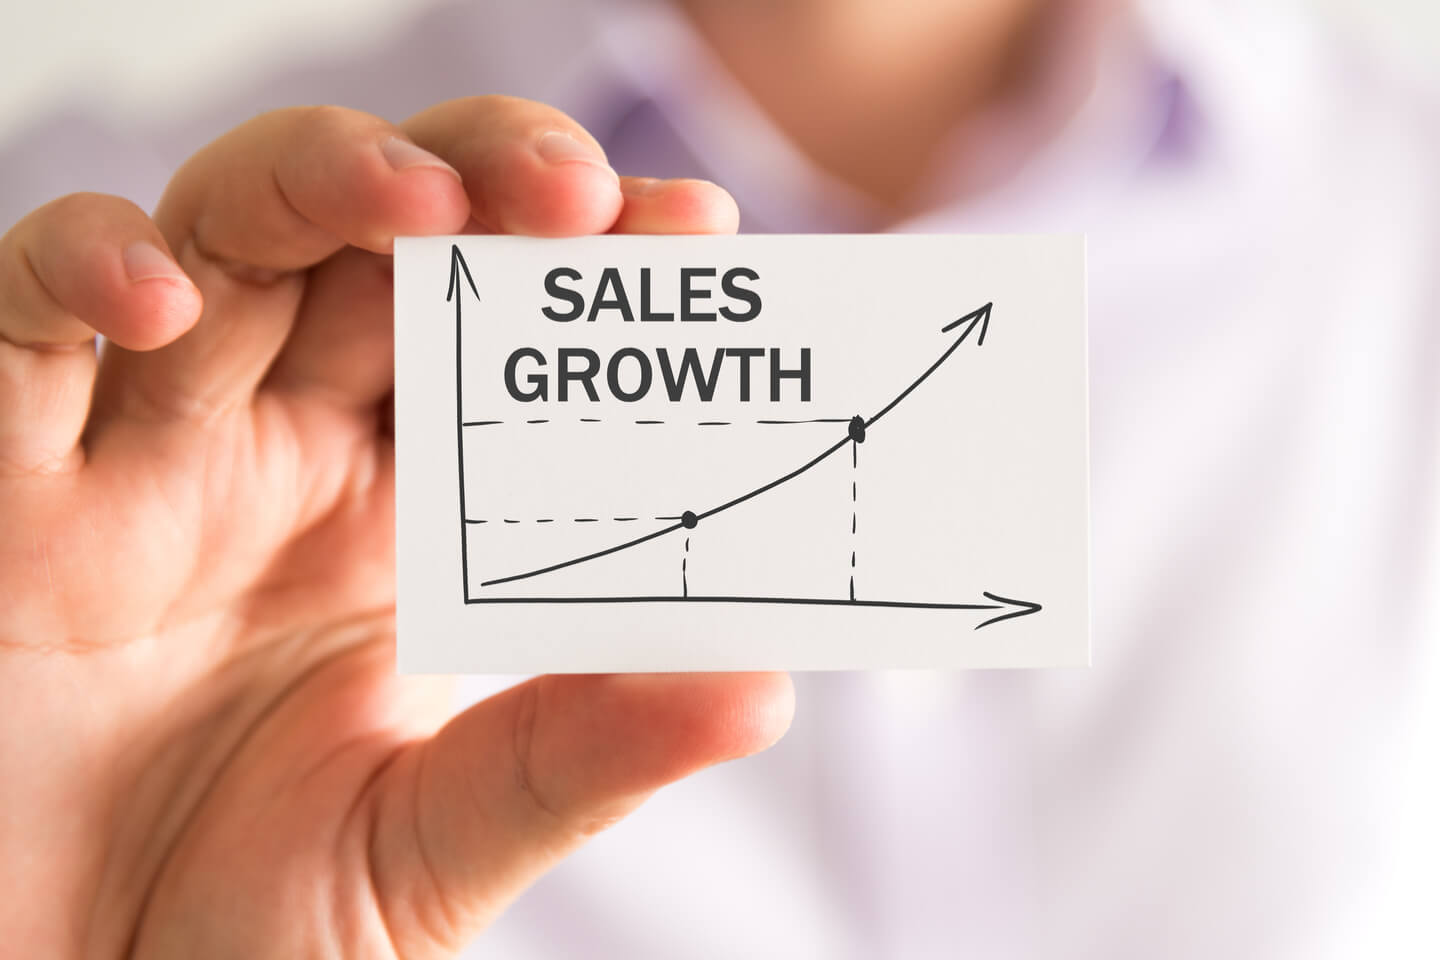 3 Ecommerce Tips To Help You Grow Sales